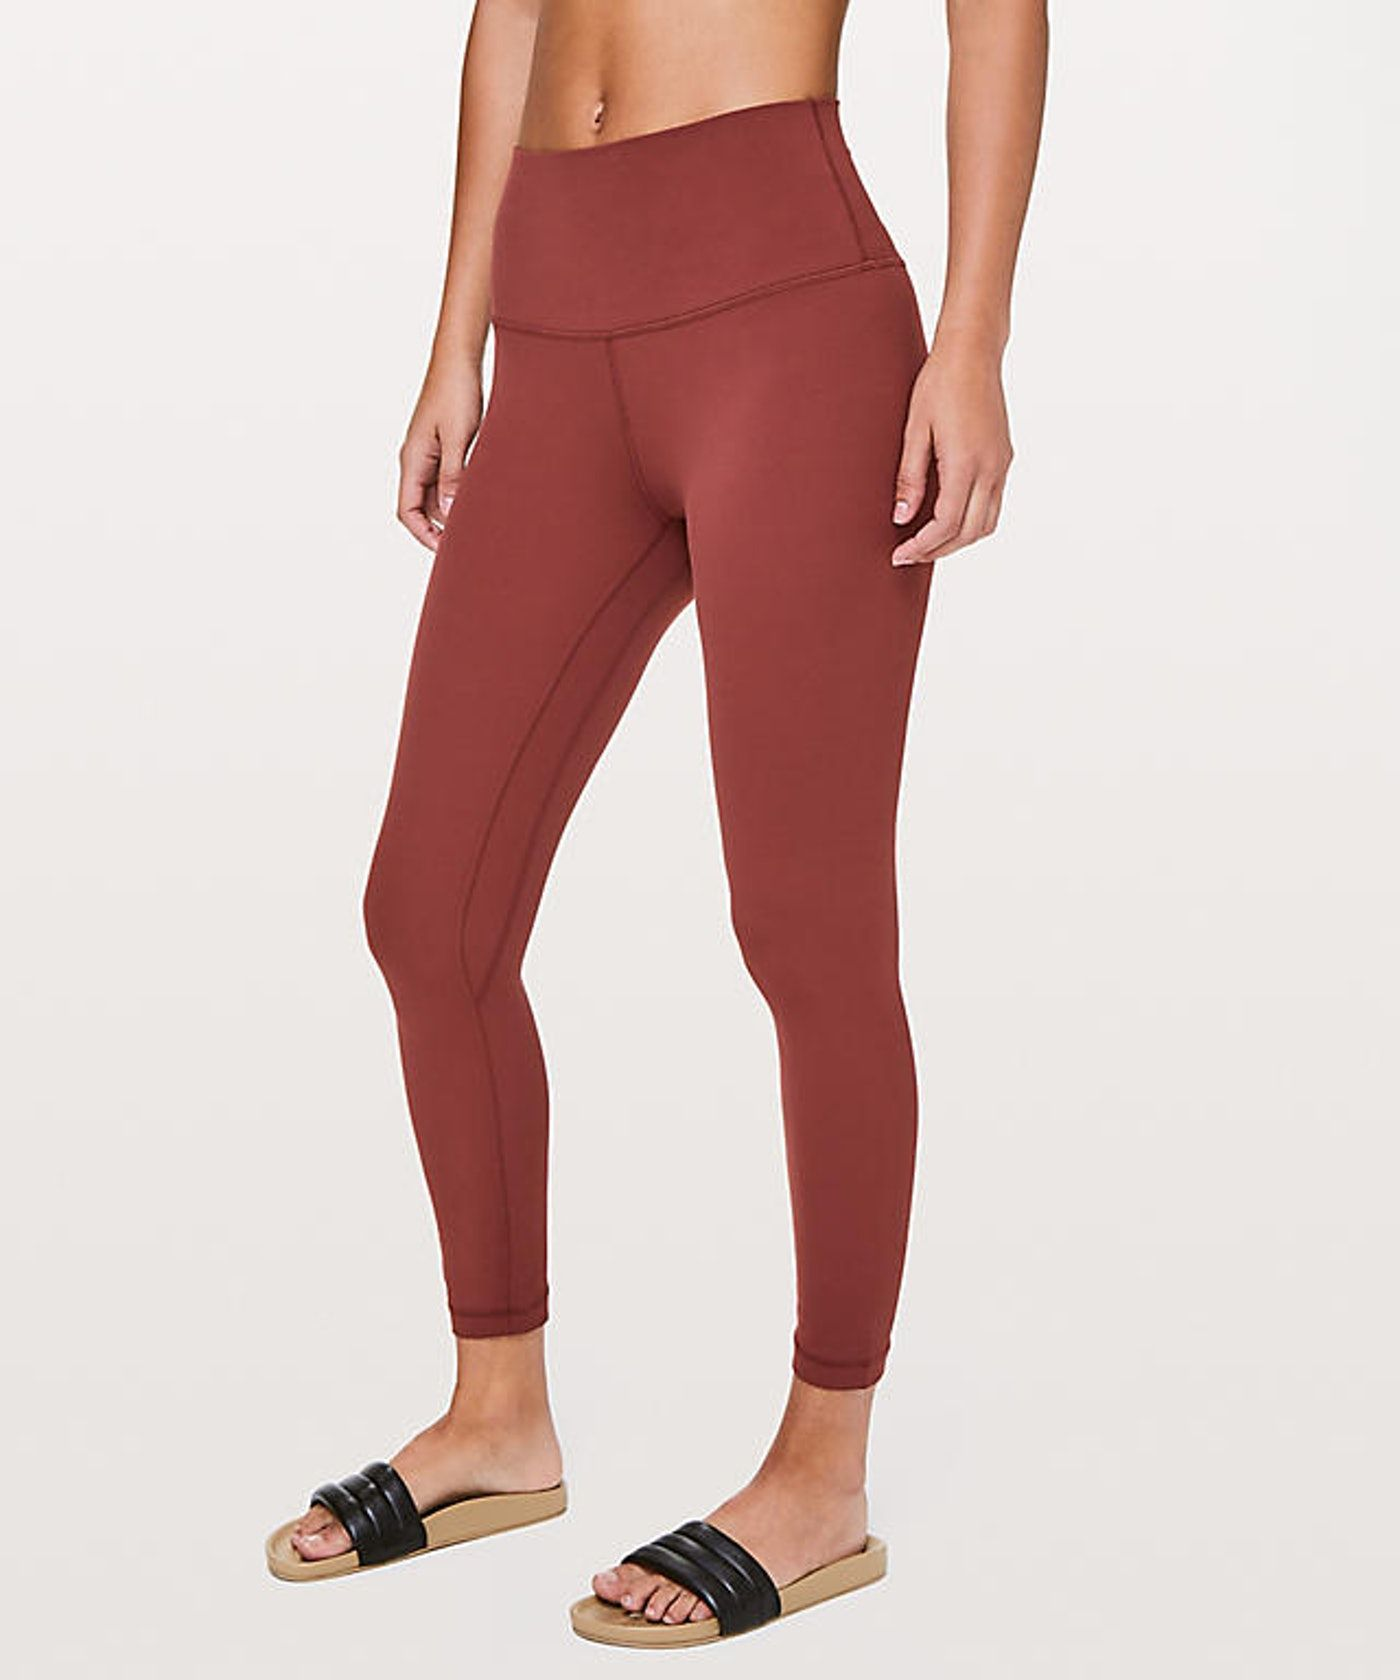 718a717fe4e2f1 I Always Look For This One Thing In High-Waisted Leggings in 2019 ...